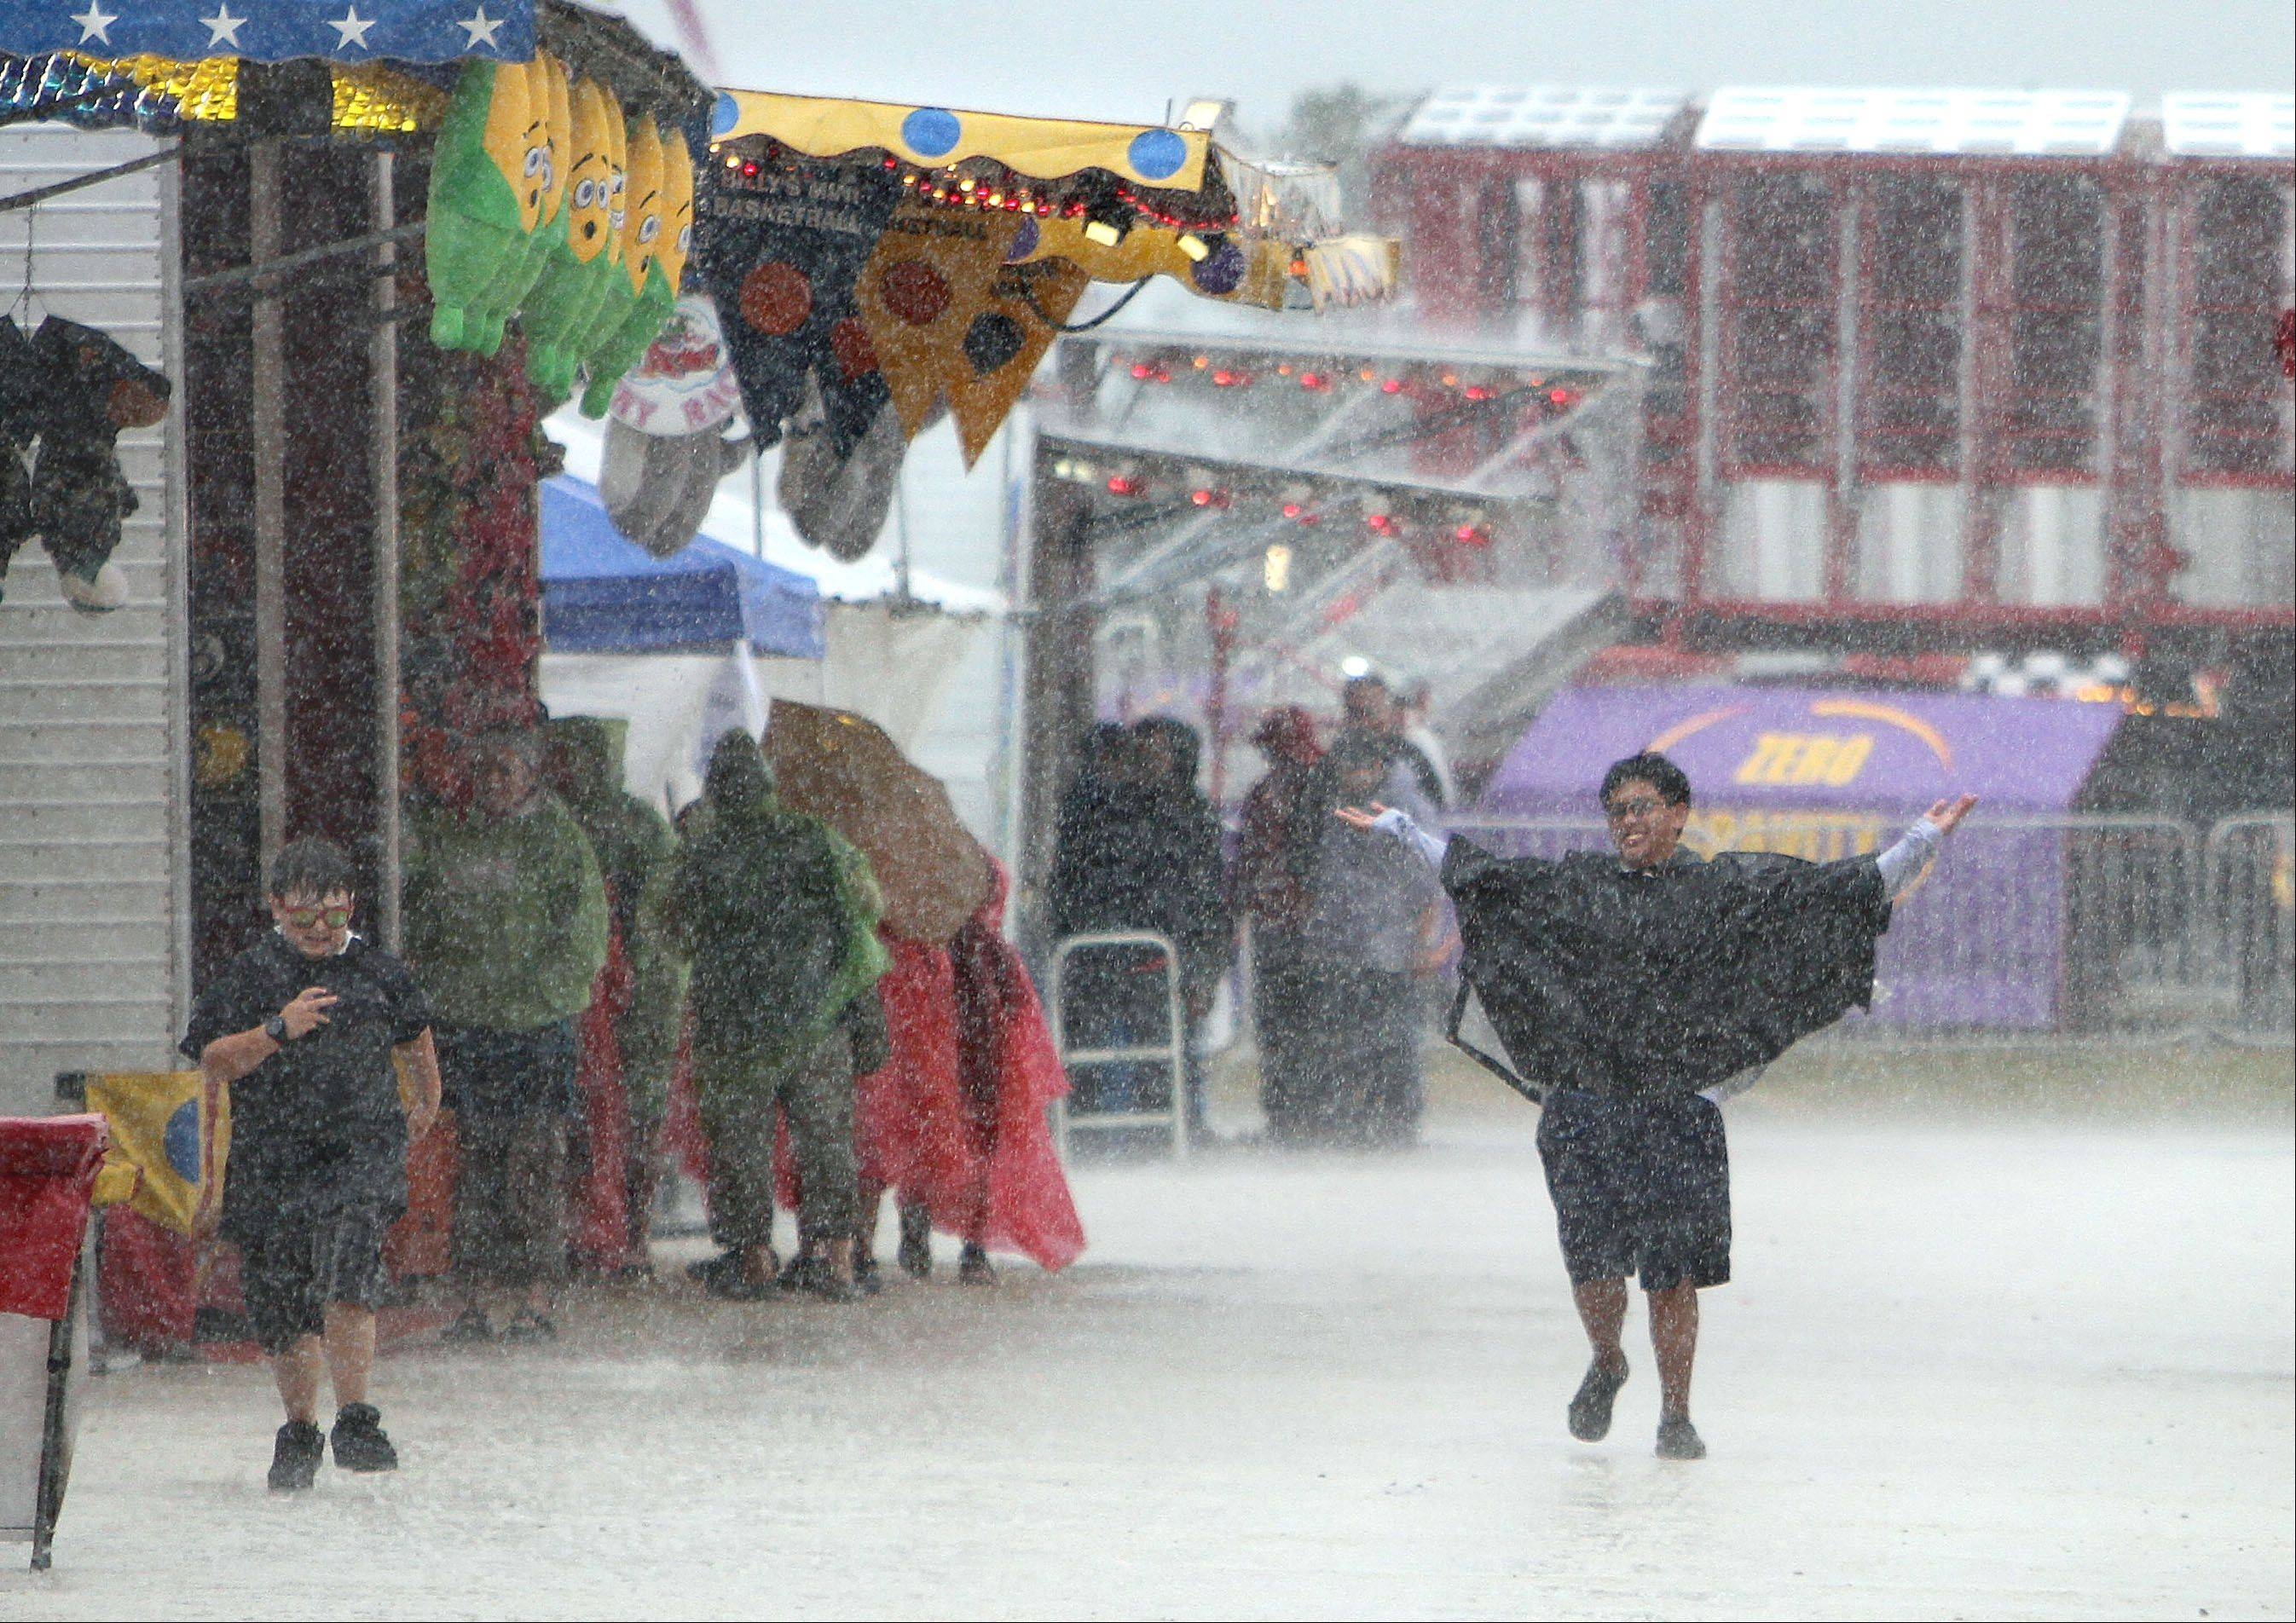 Fair goers make the best of a down pour by playing in the rain.